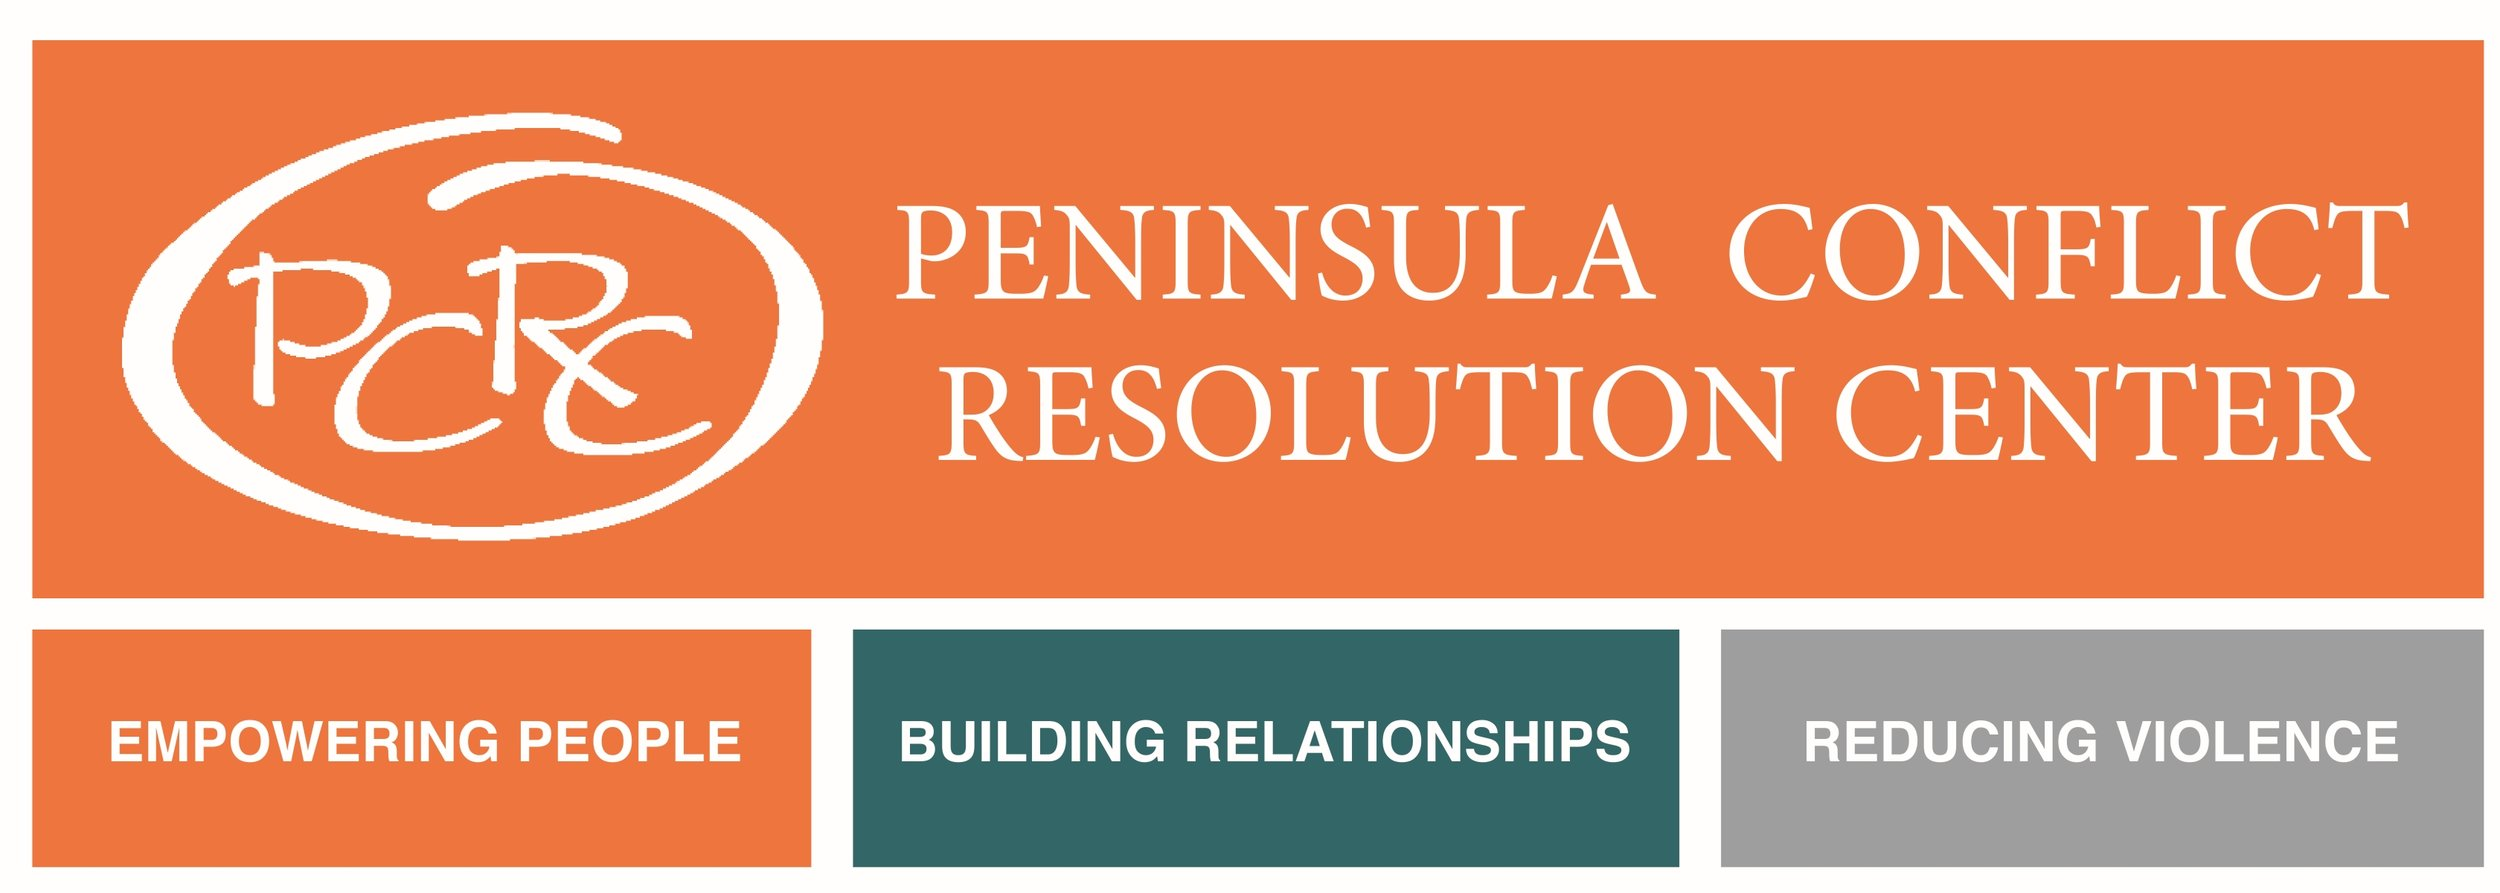 Peninsula Conflict Resolution Center